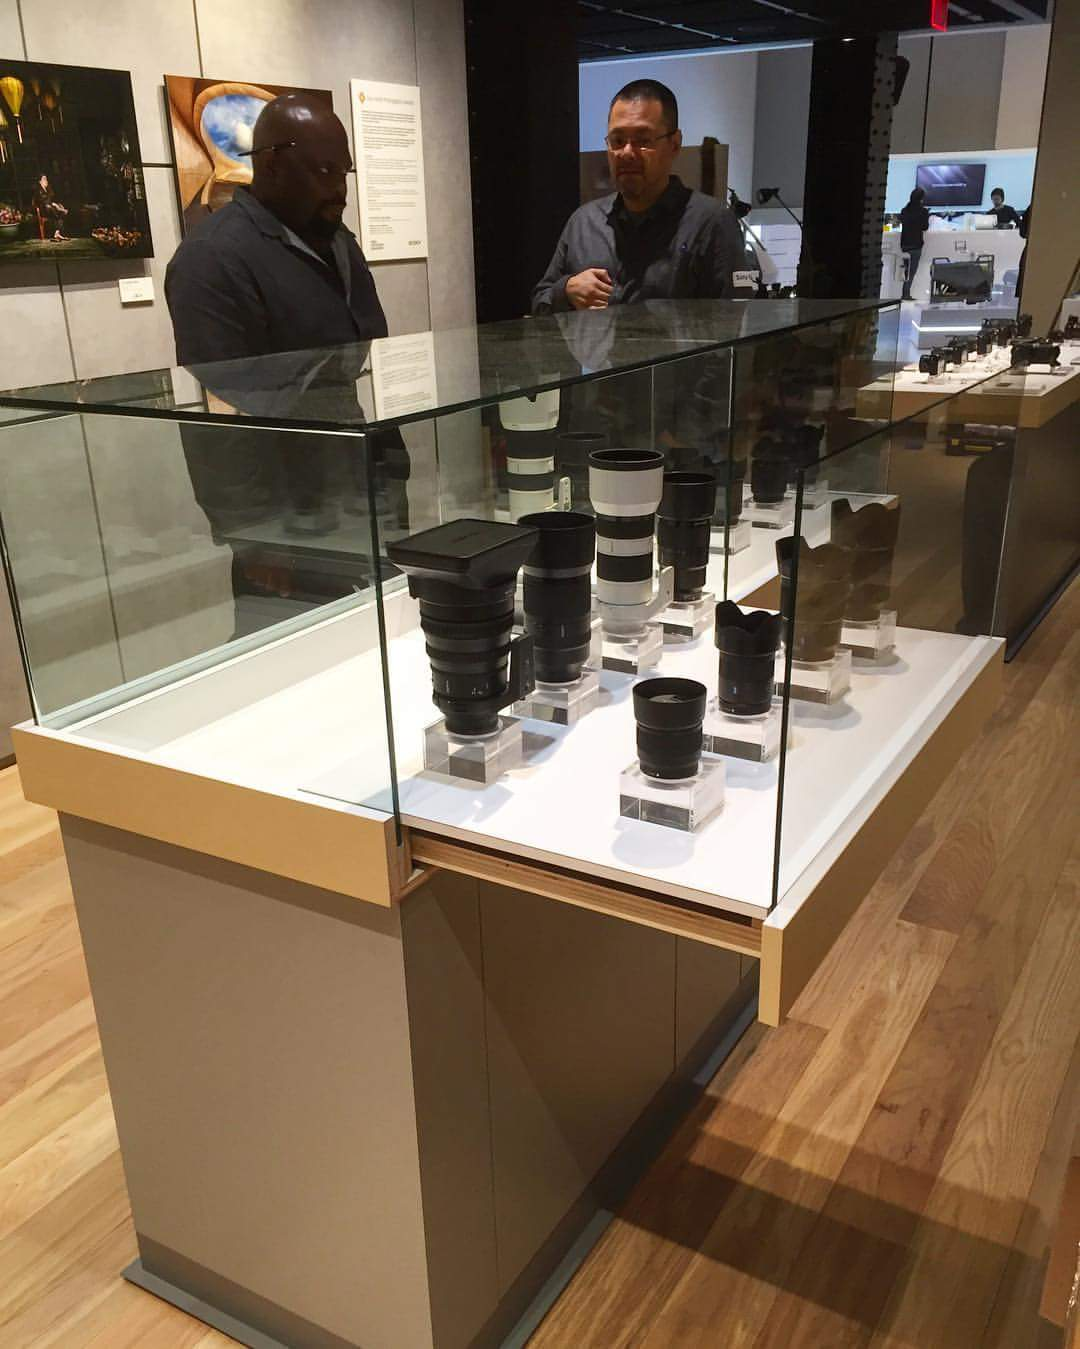 Sony Square display units